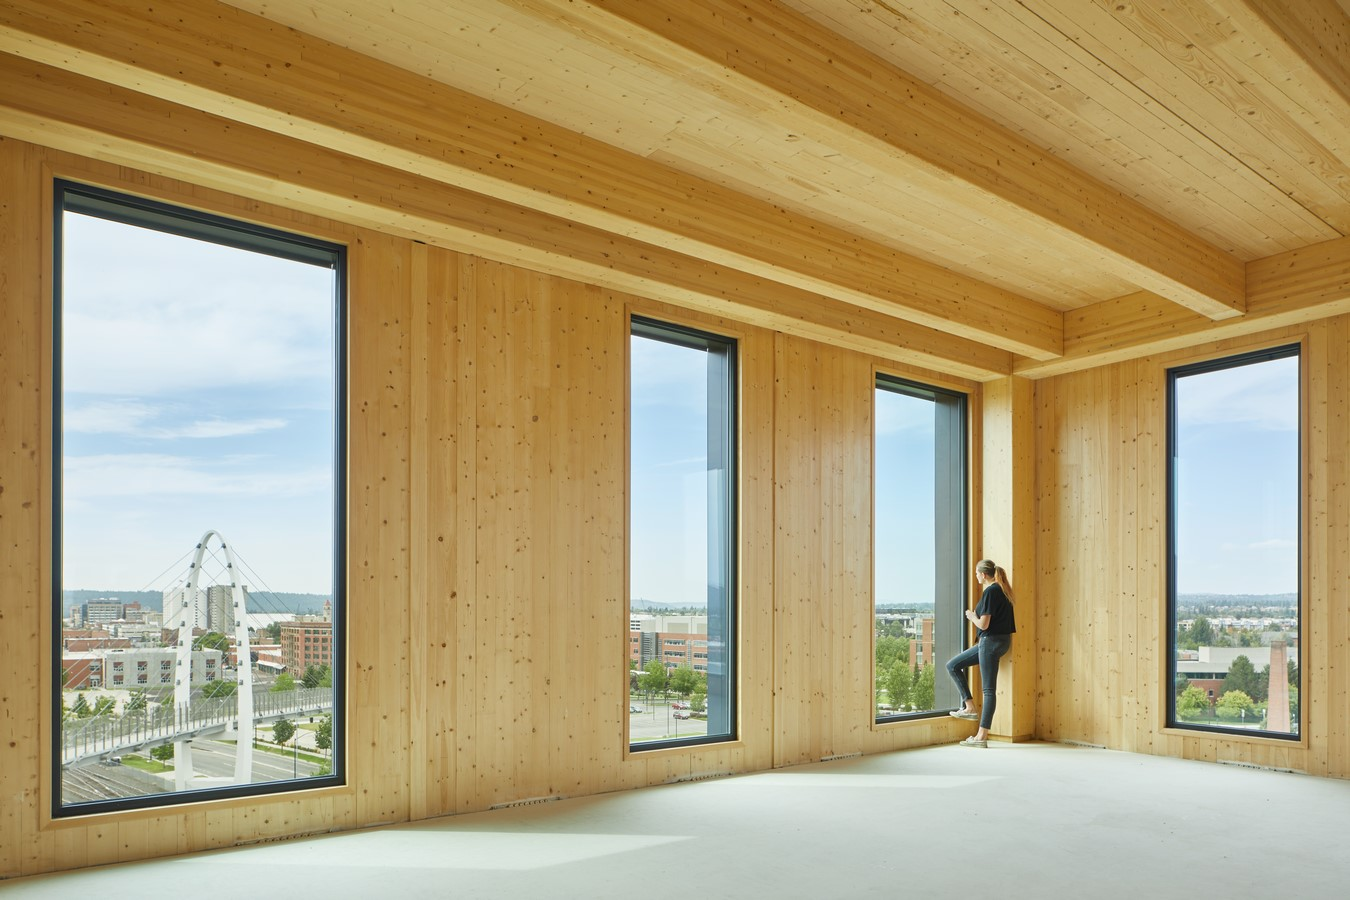 15 Projects by Michael Green Architecture, Canada Sheet52